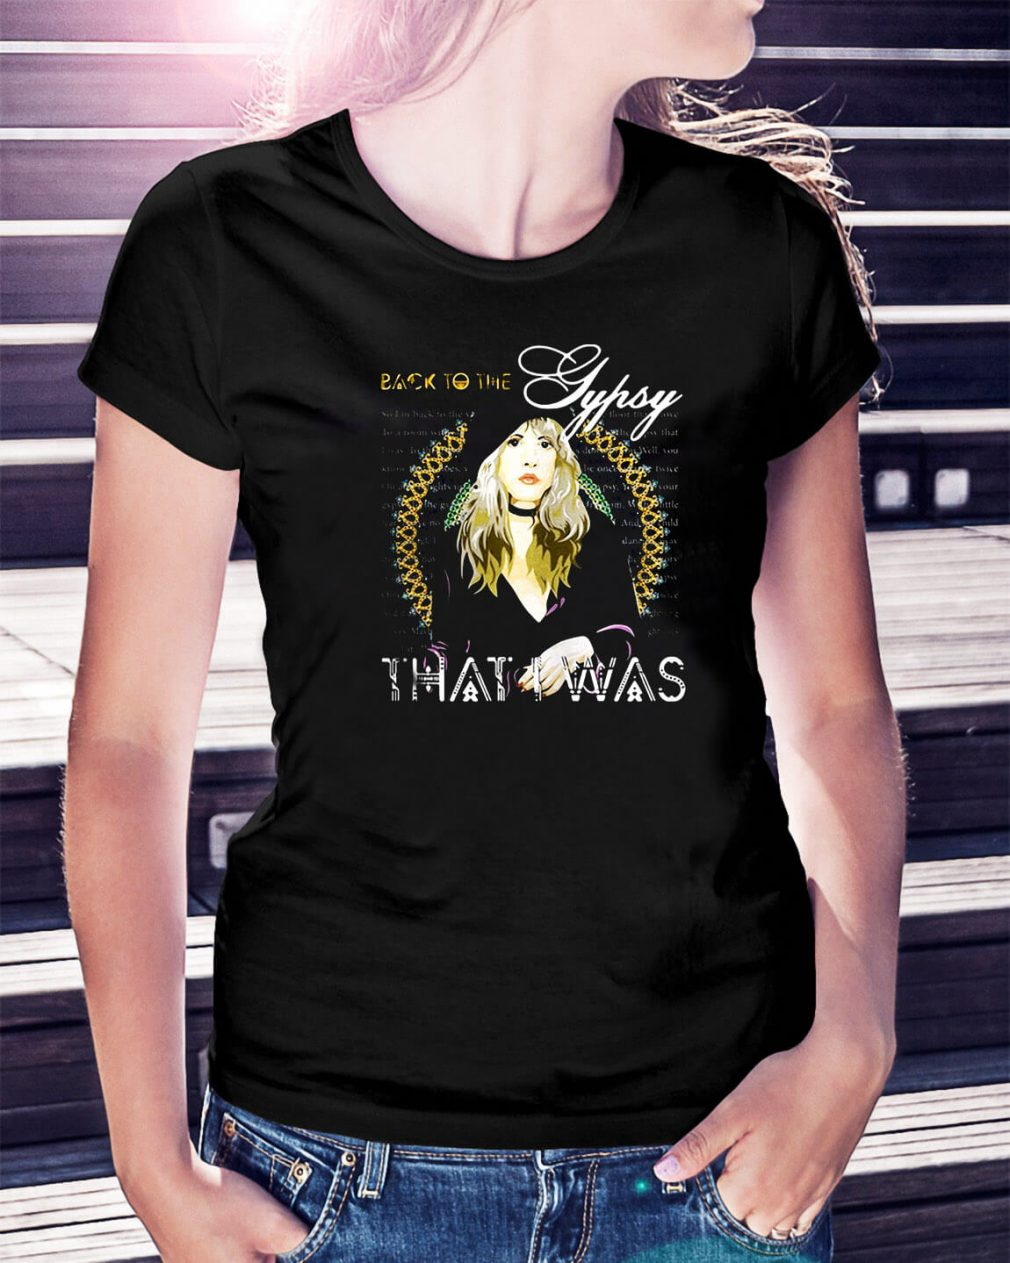 Stevie Nicks Gypsy back to the Gypsy Ladies Tee